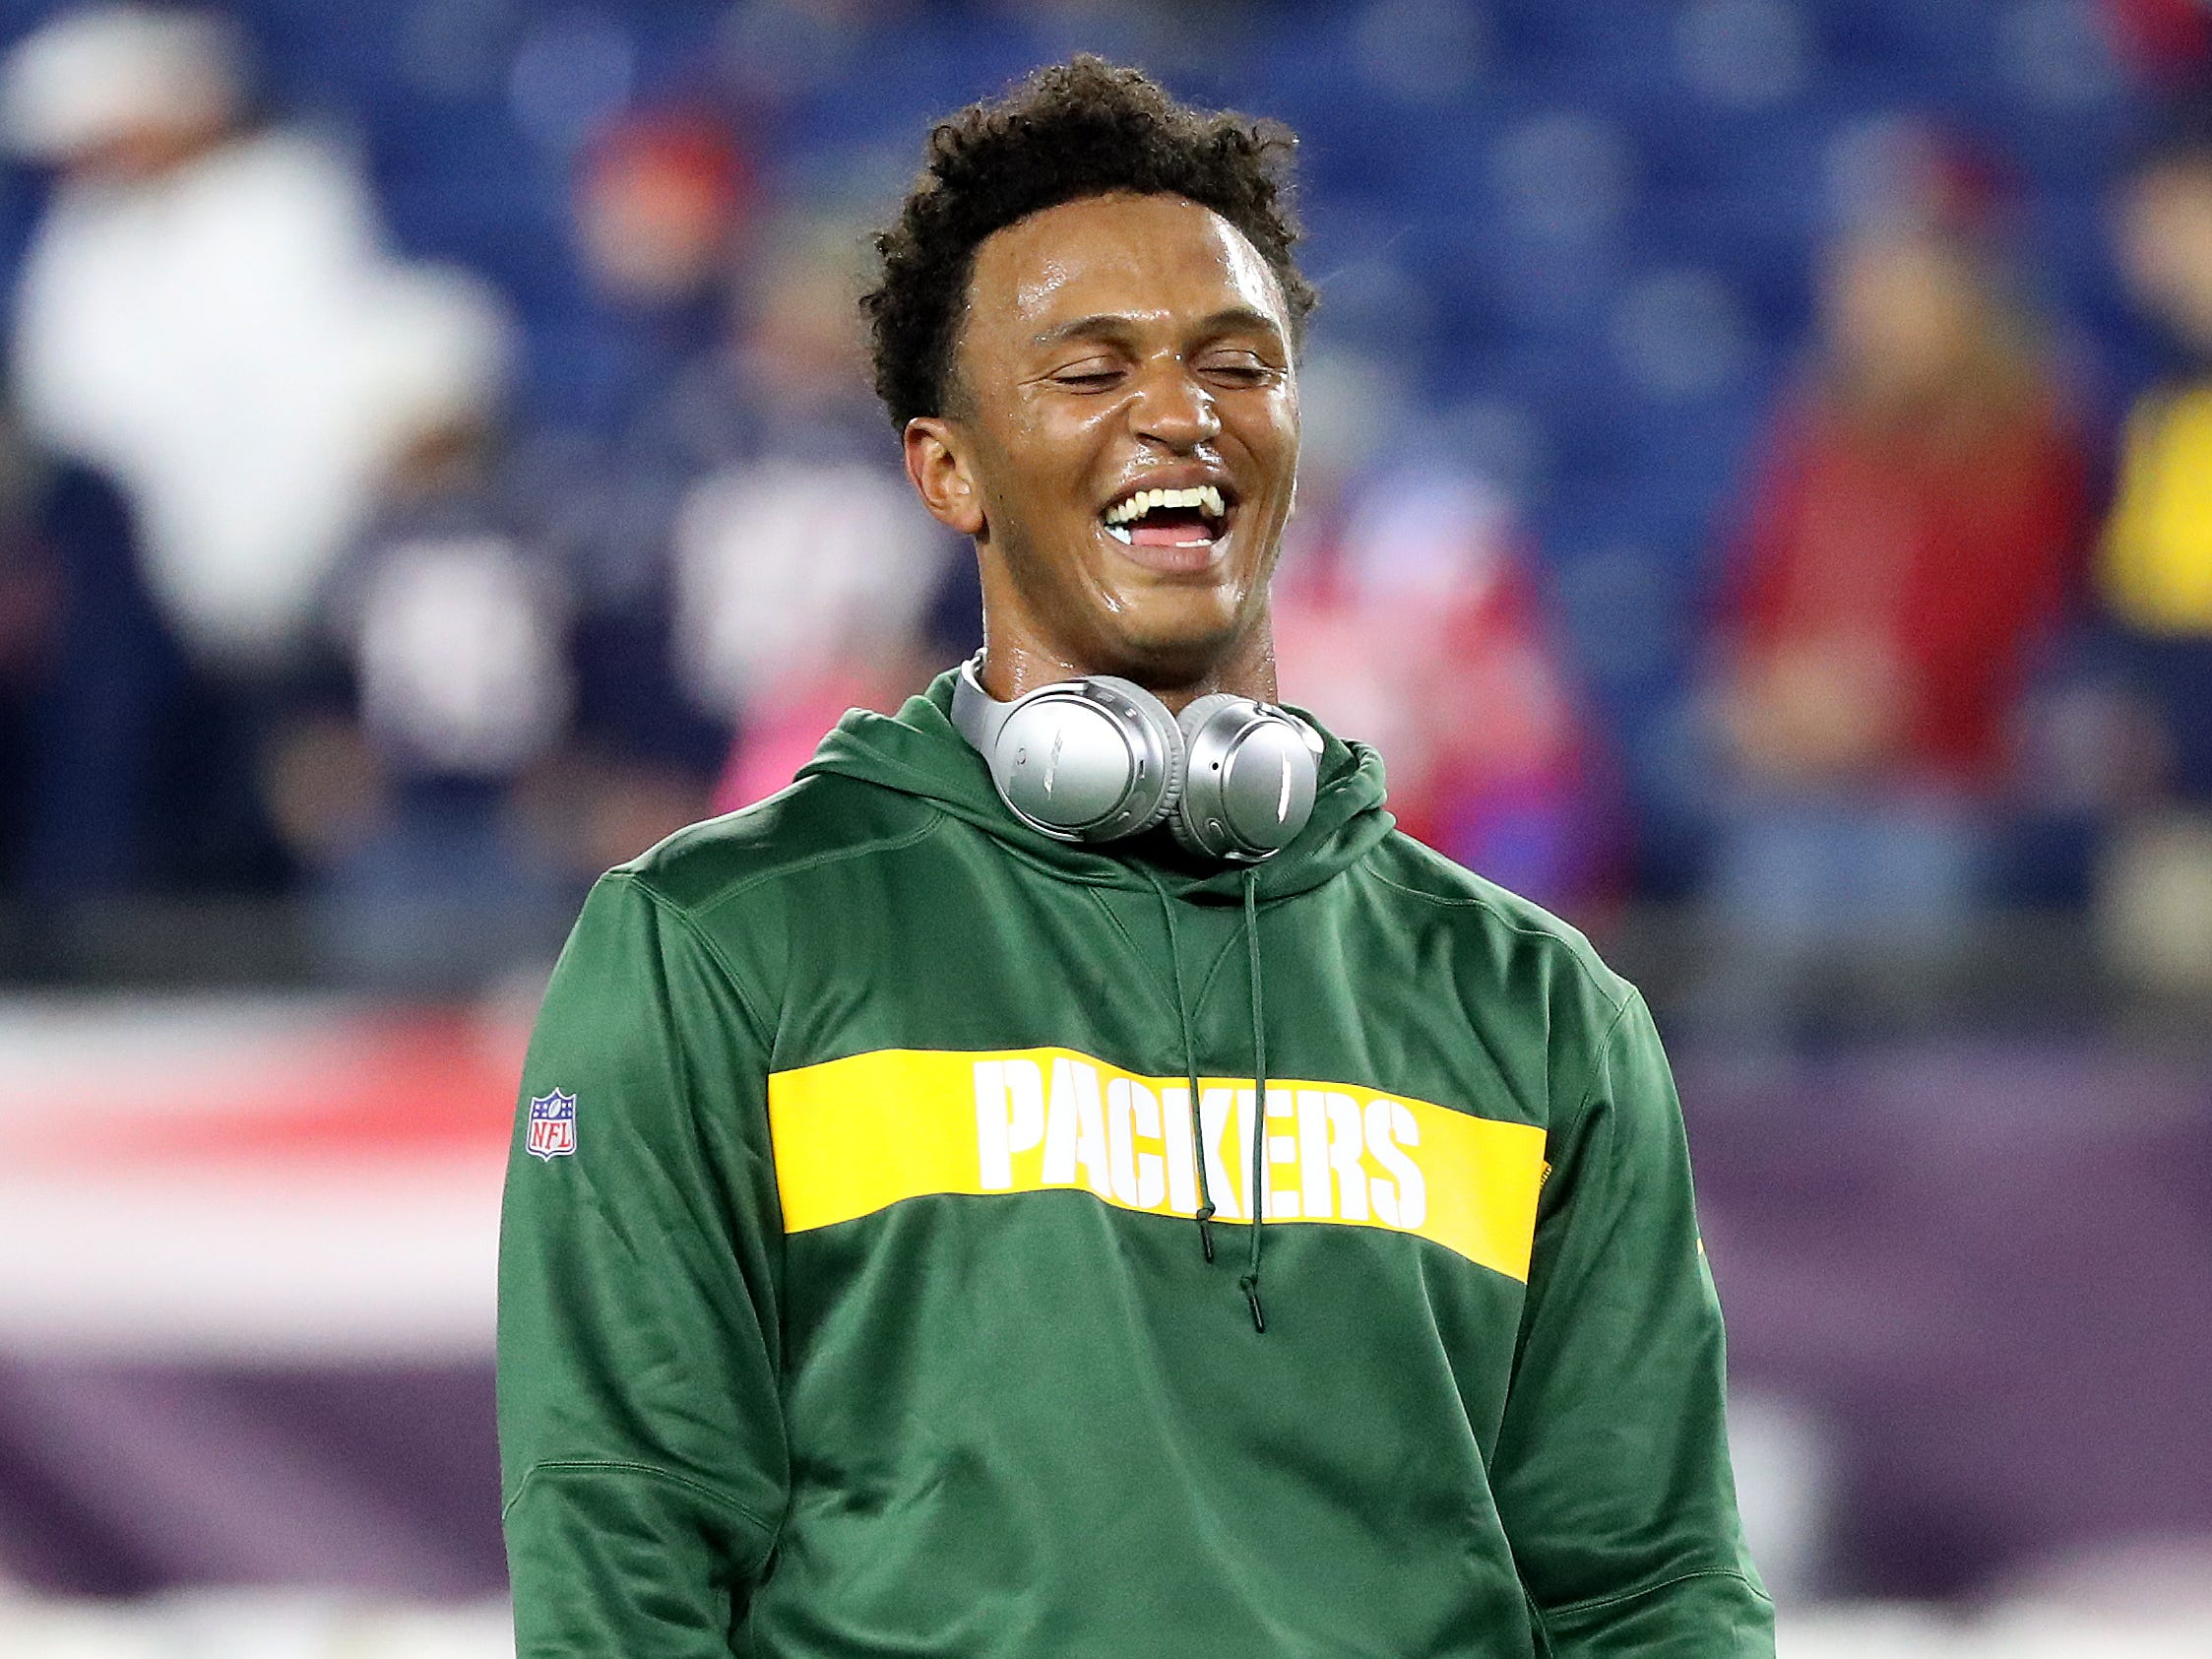 Green Bay Packers quarterback DeShone Kizer (9) laughs during pregame warmups against the New England Patriots Sunday, November 4, 2018 at Gillette Stadium in Foxborough, Mass.